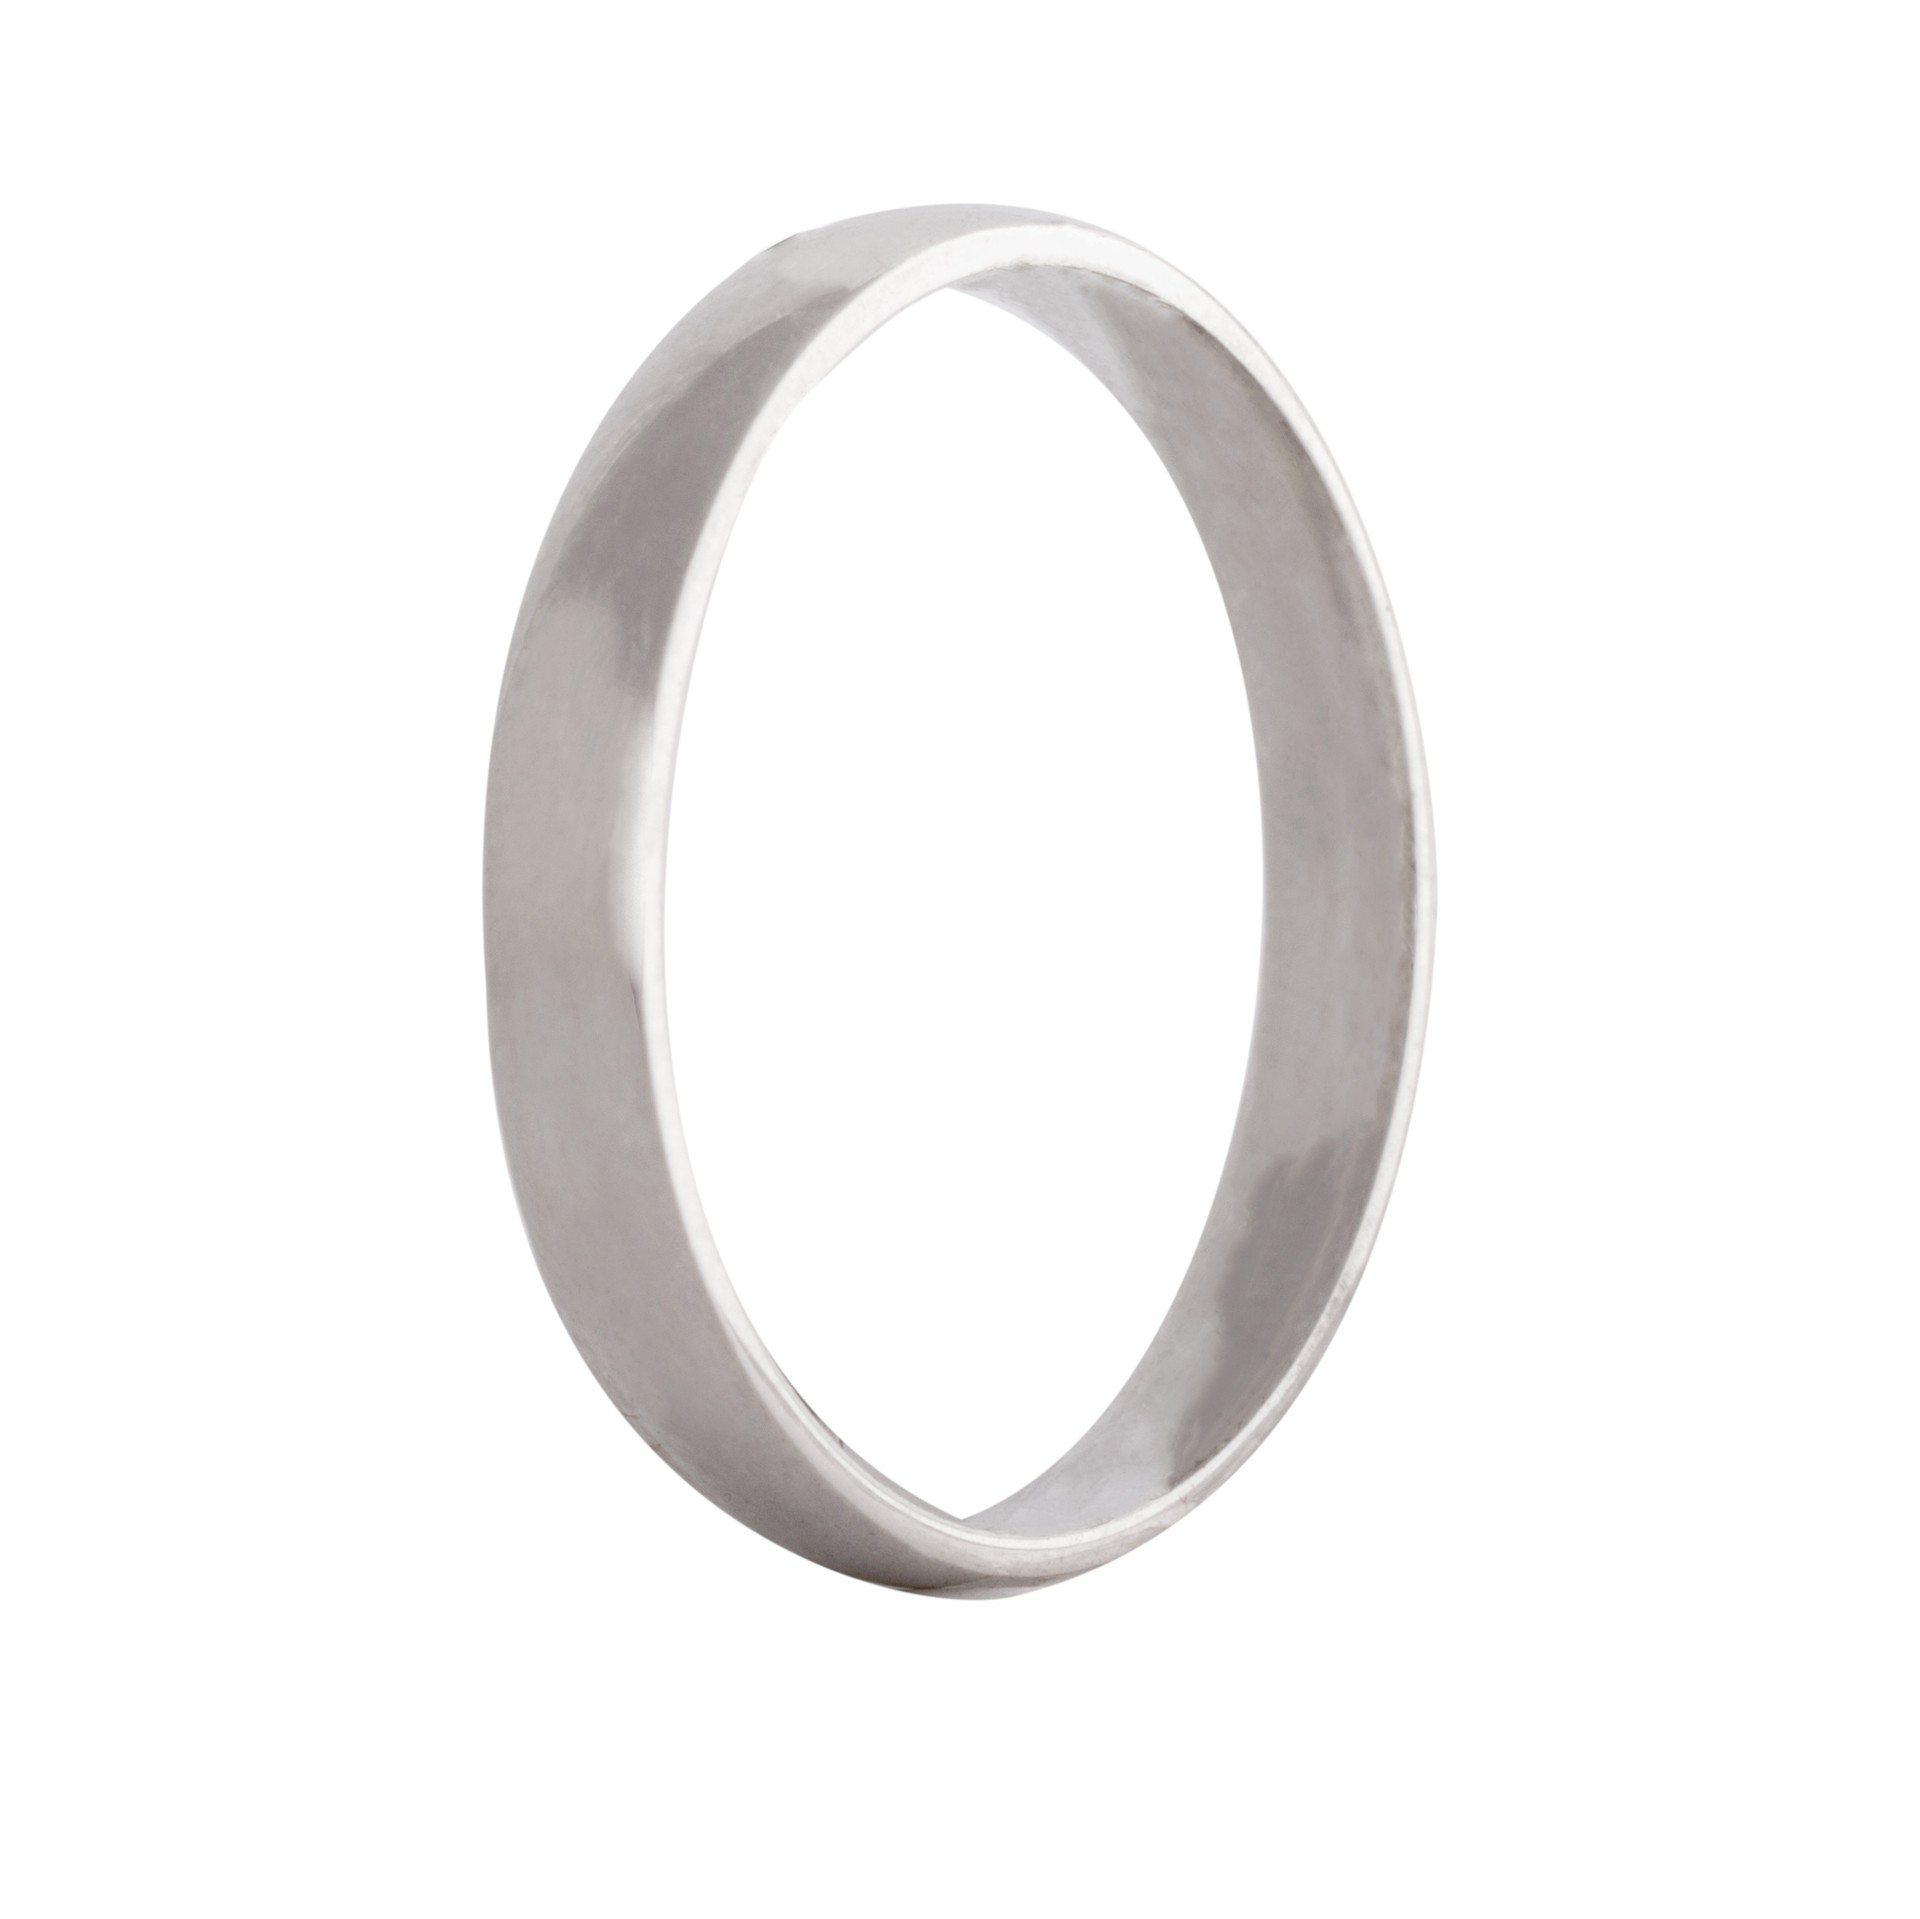 Court wedding band 2.5mm 9ct white gold